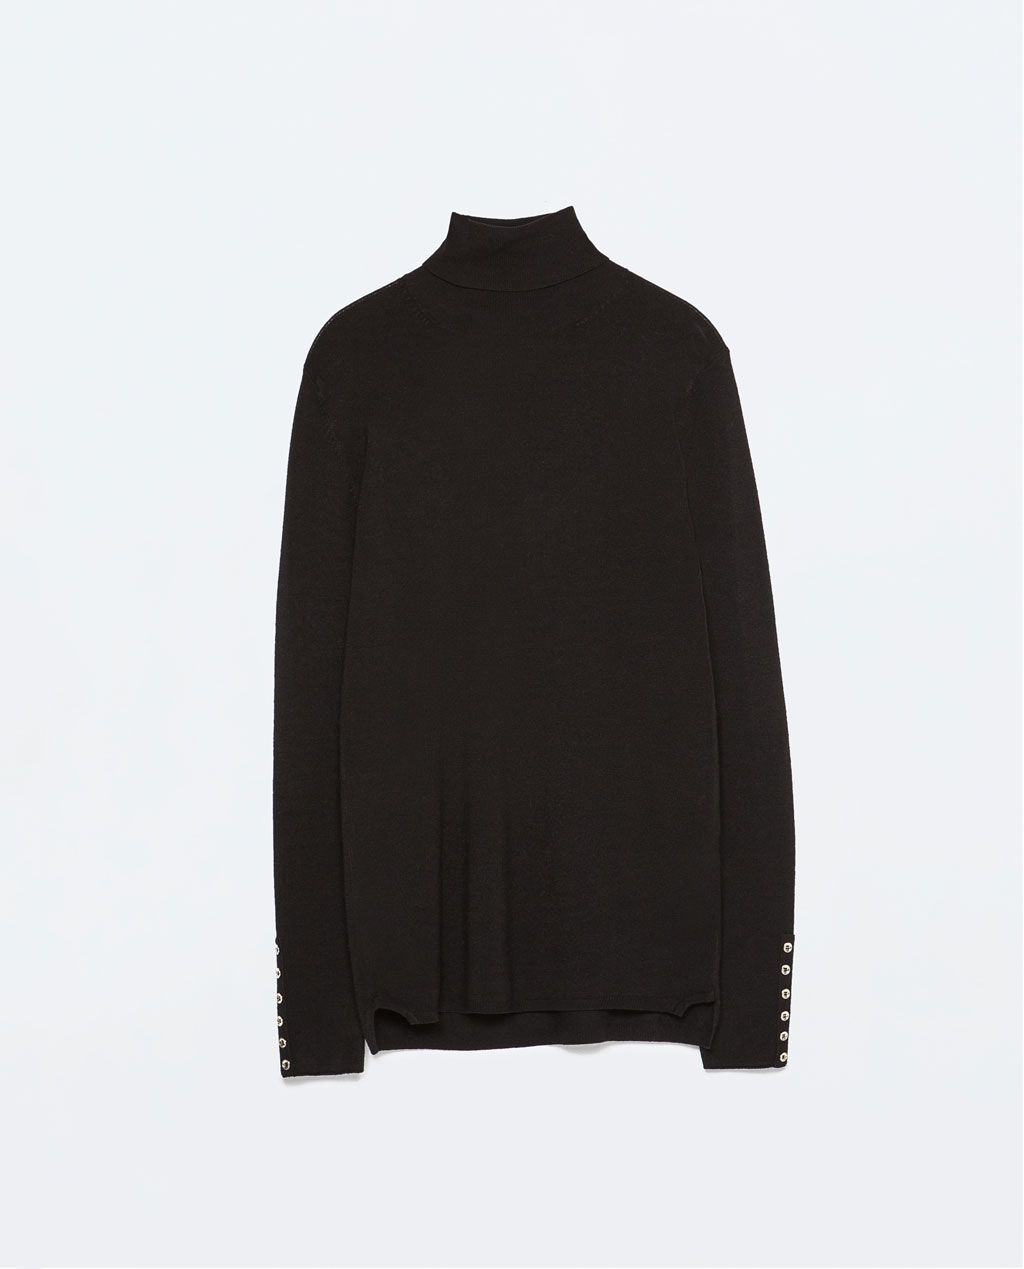 ZARA - COLLECTION SS15 - TURTLENECK RAYON SWEATER WITH HOOKED CUFF